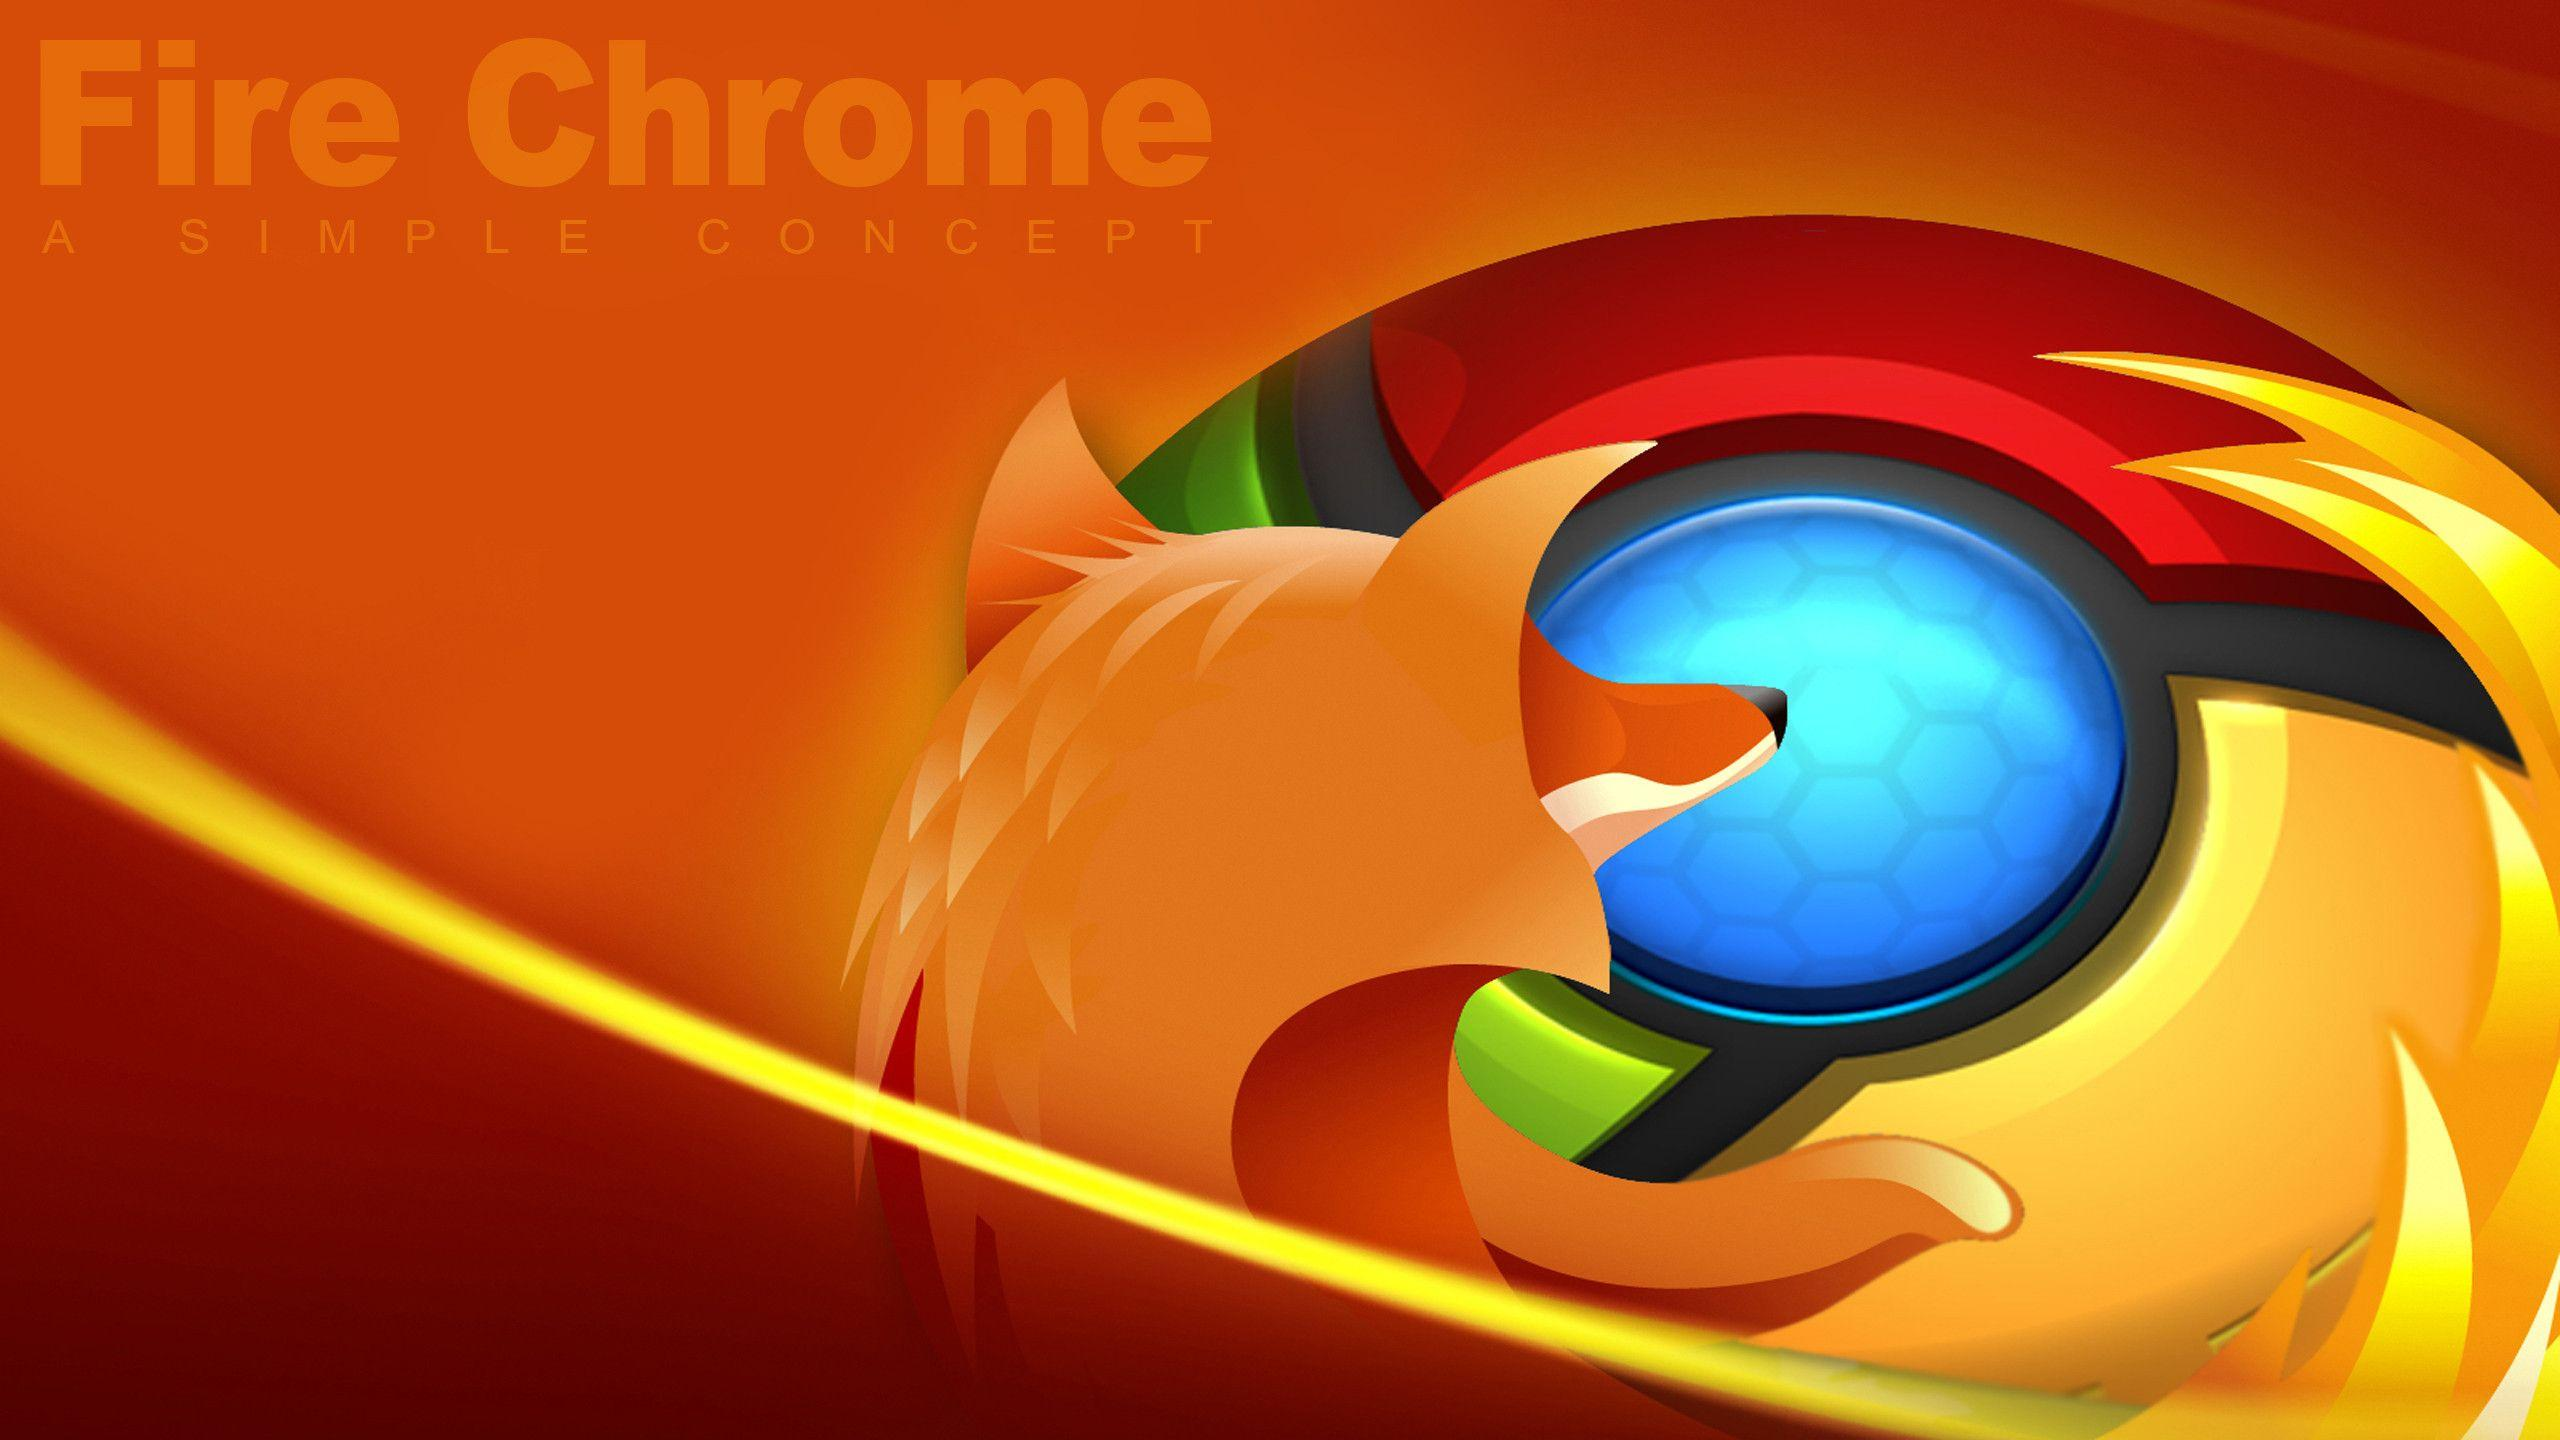 Fire-Chrome Wallpaper by HckmstrRahul on DeviantArt